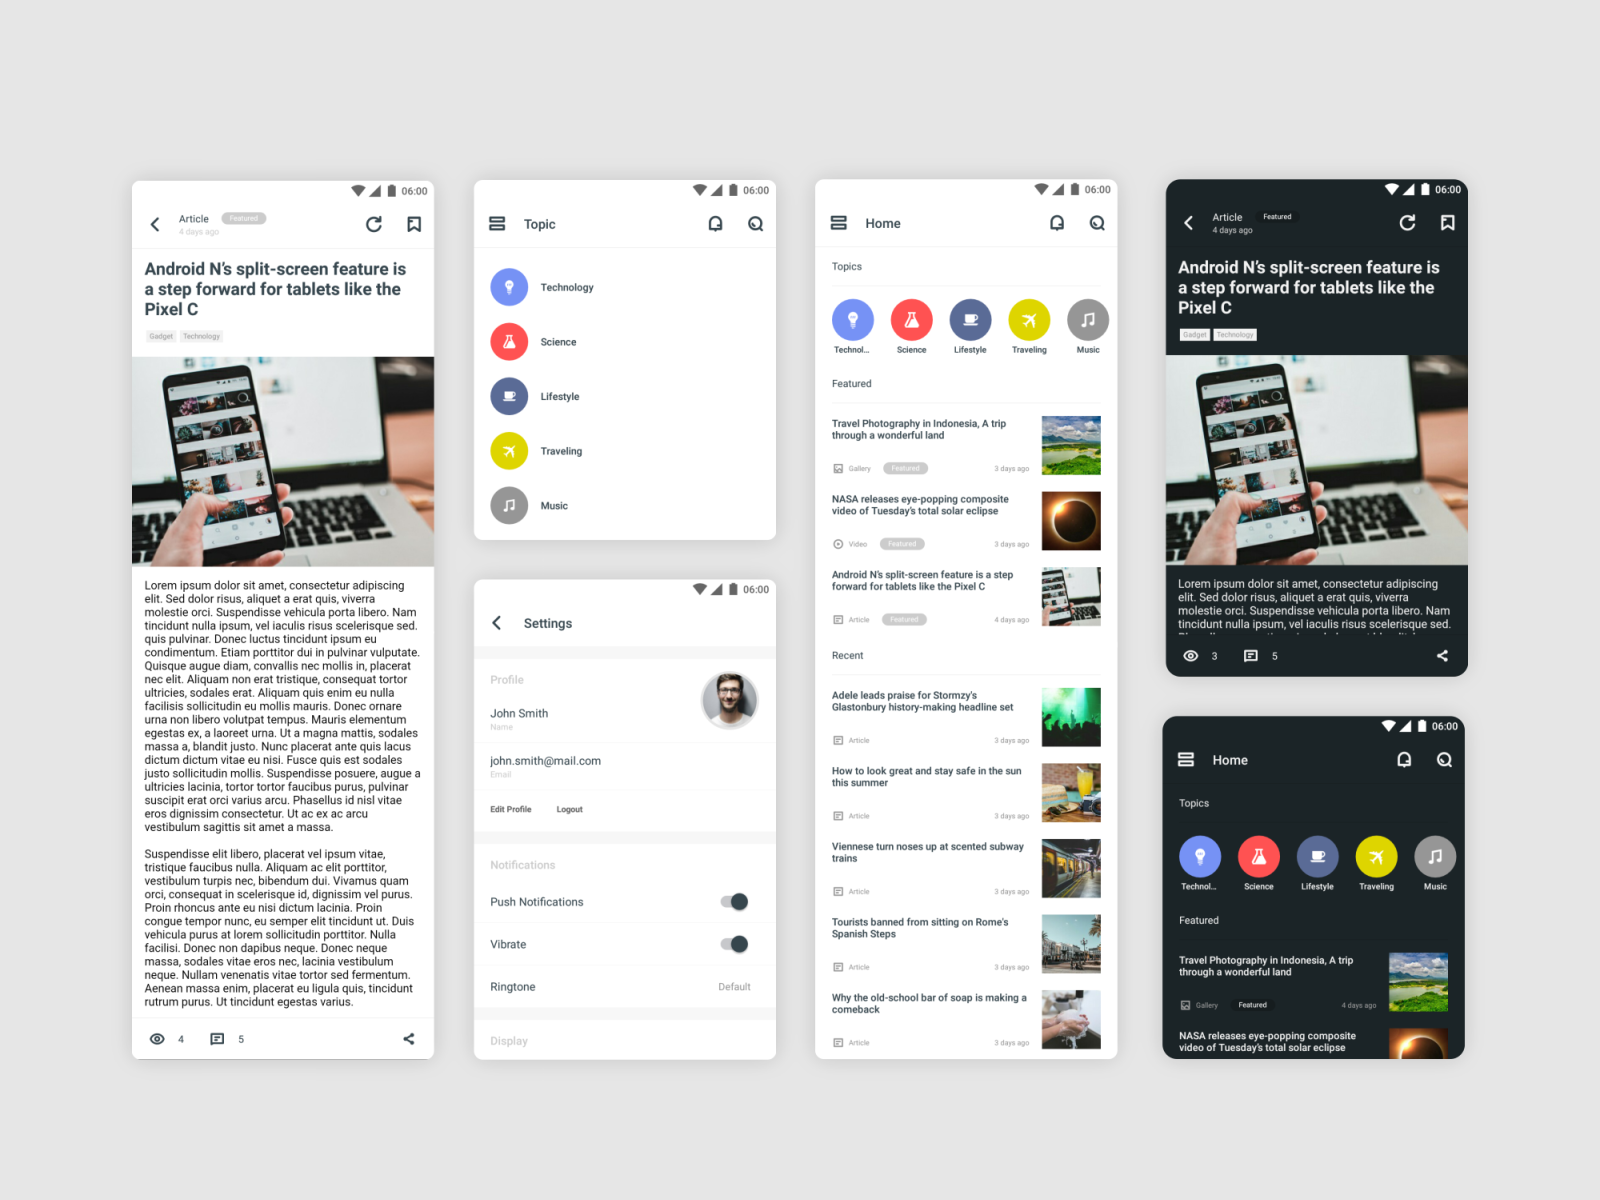 Notch - Android News Application by muslim sidiq on Dribbble